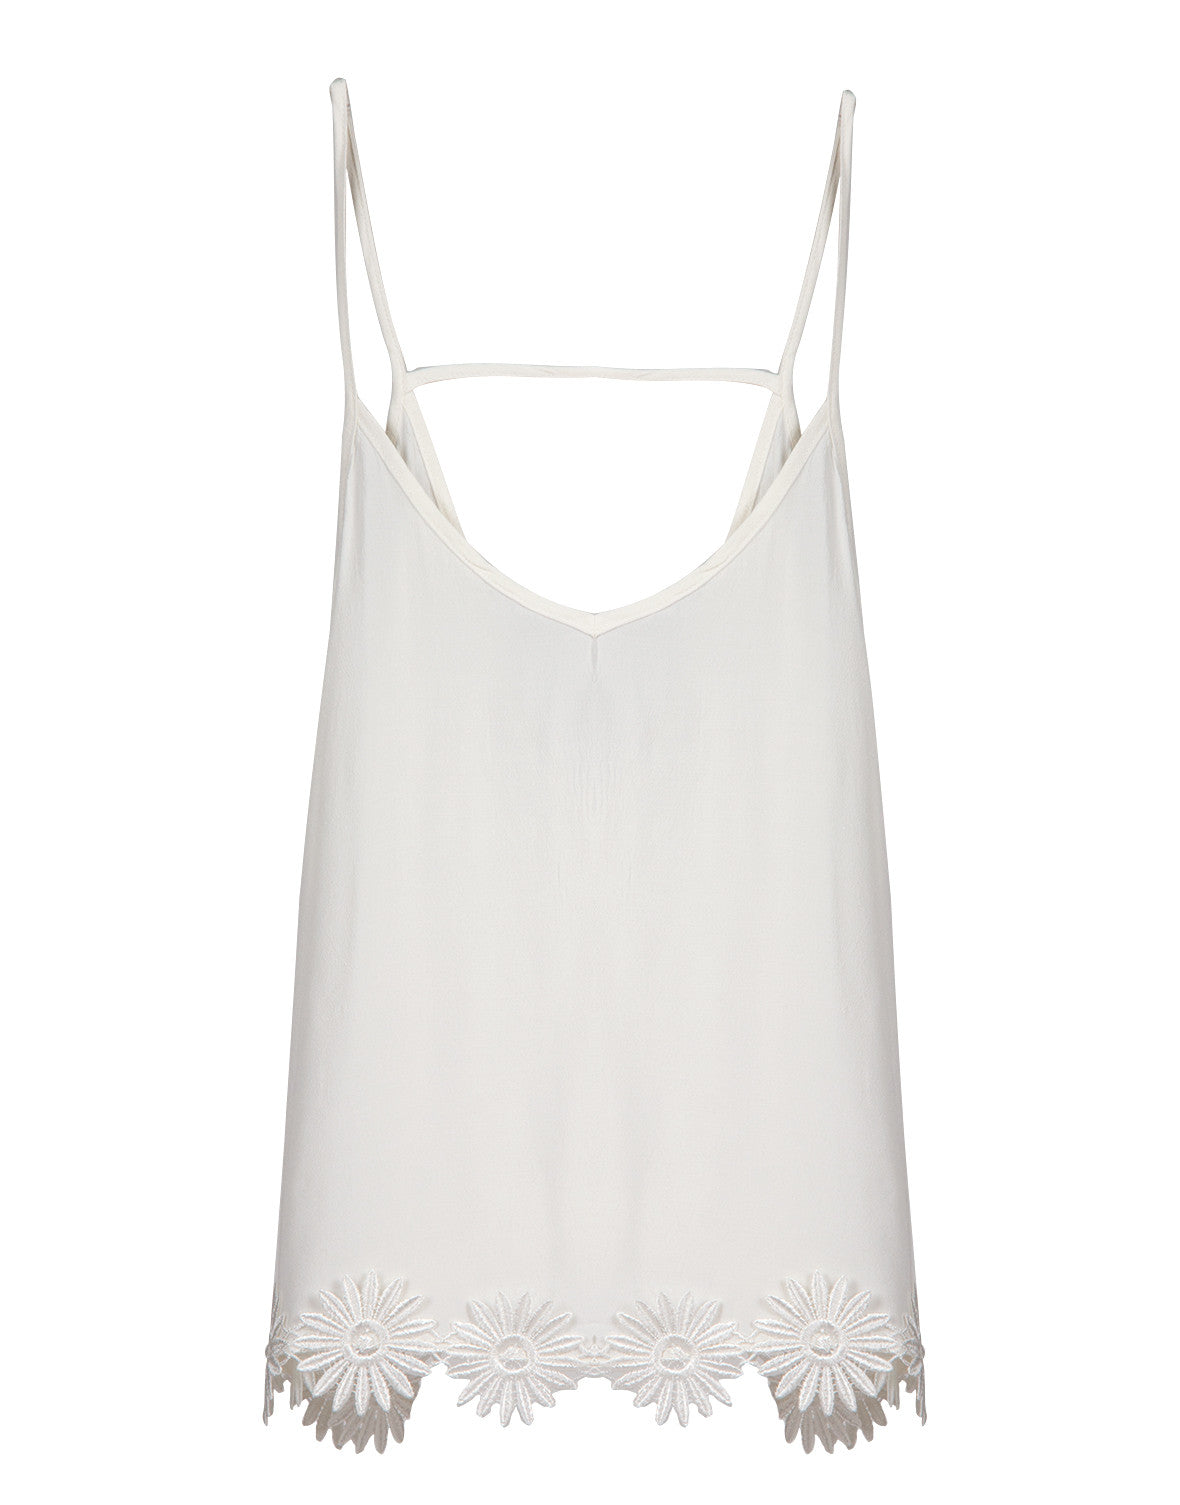 Delicate Floral Detail Tank